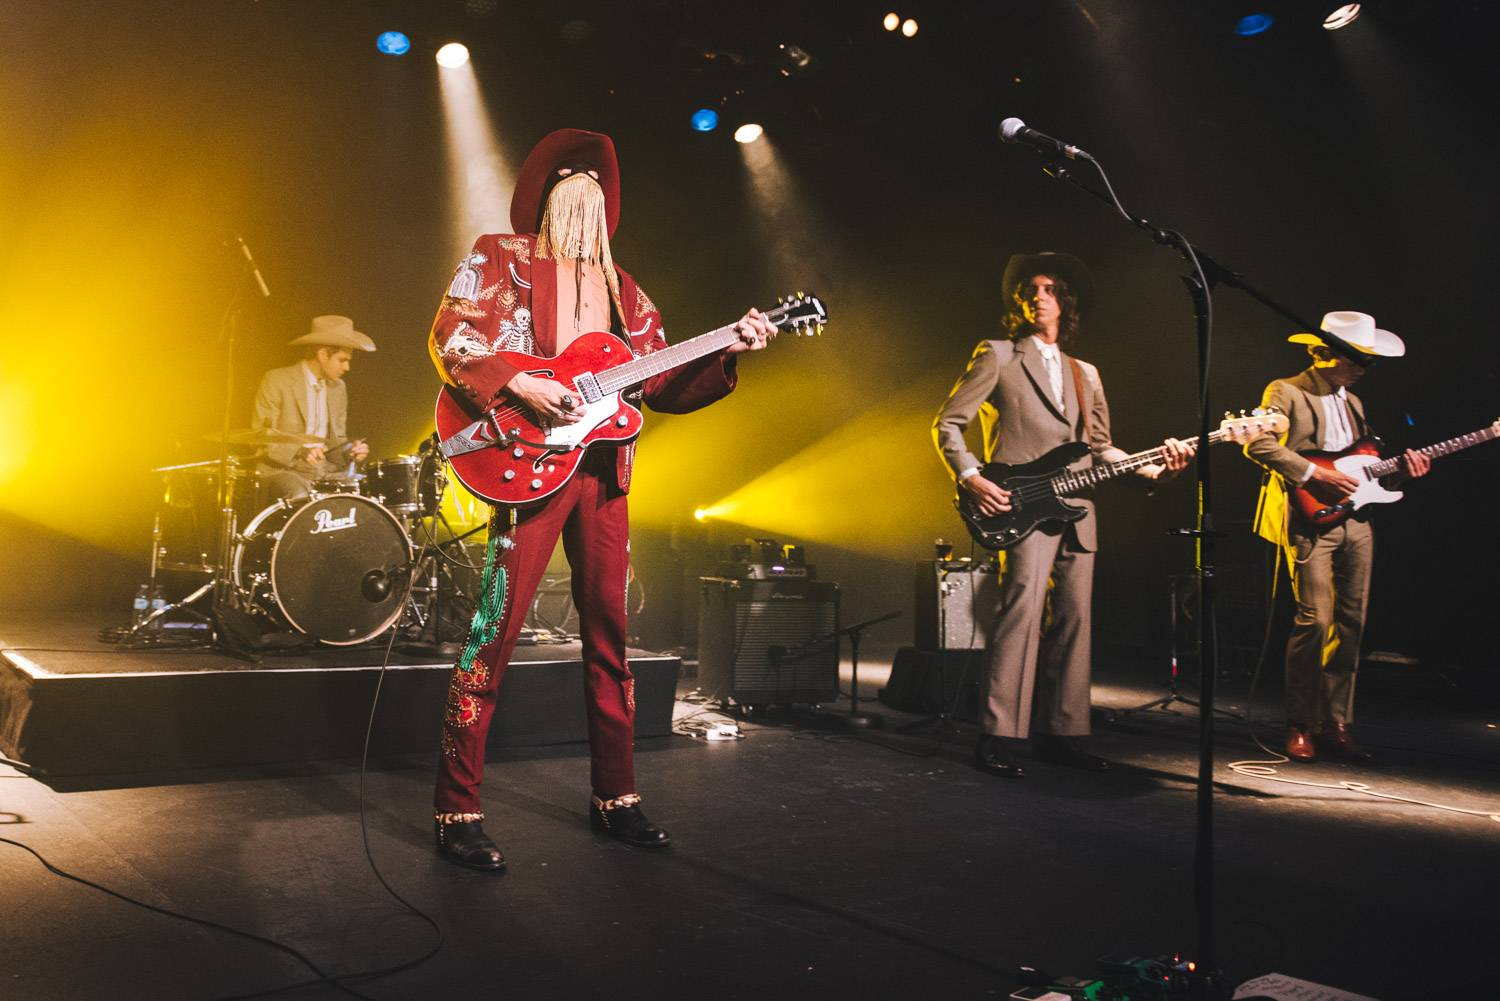 Orville Peck at the Commodore Ballroom, Vancouver, Aug 26 2019. Pavel Boiko photo.